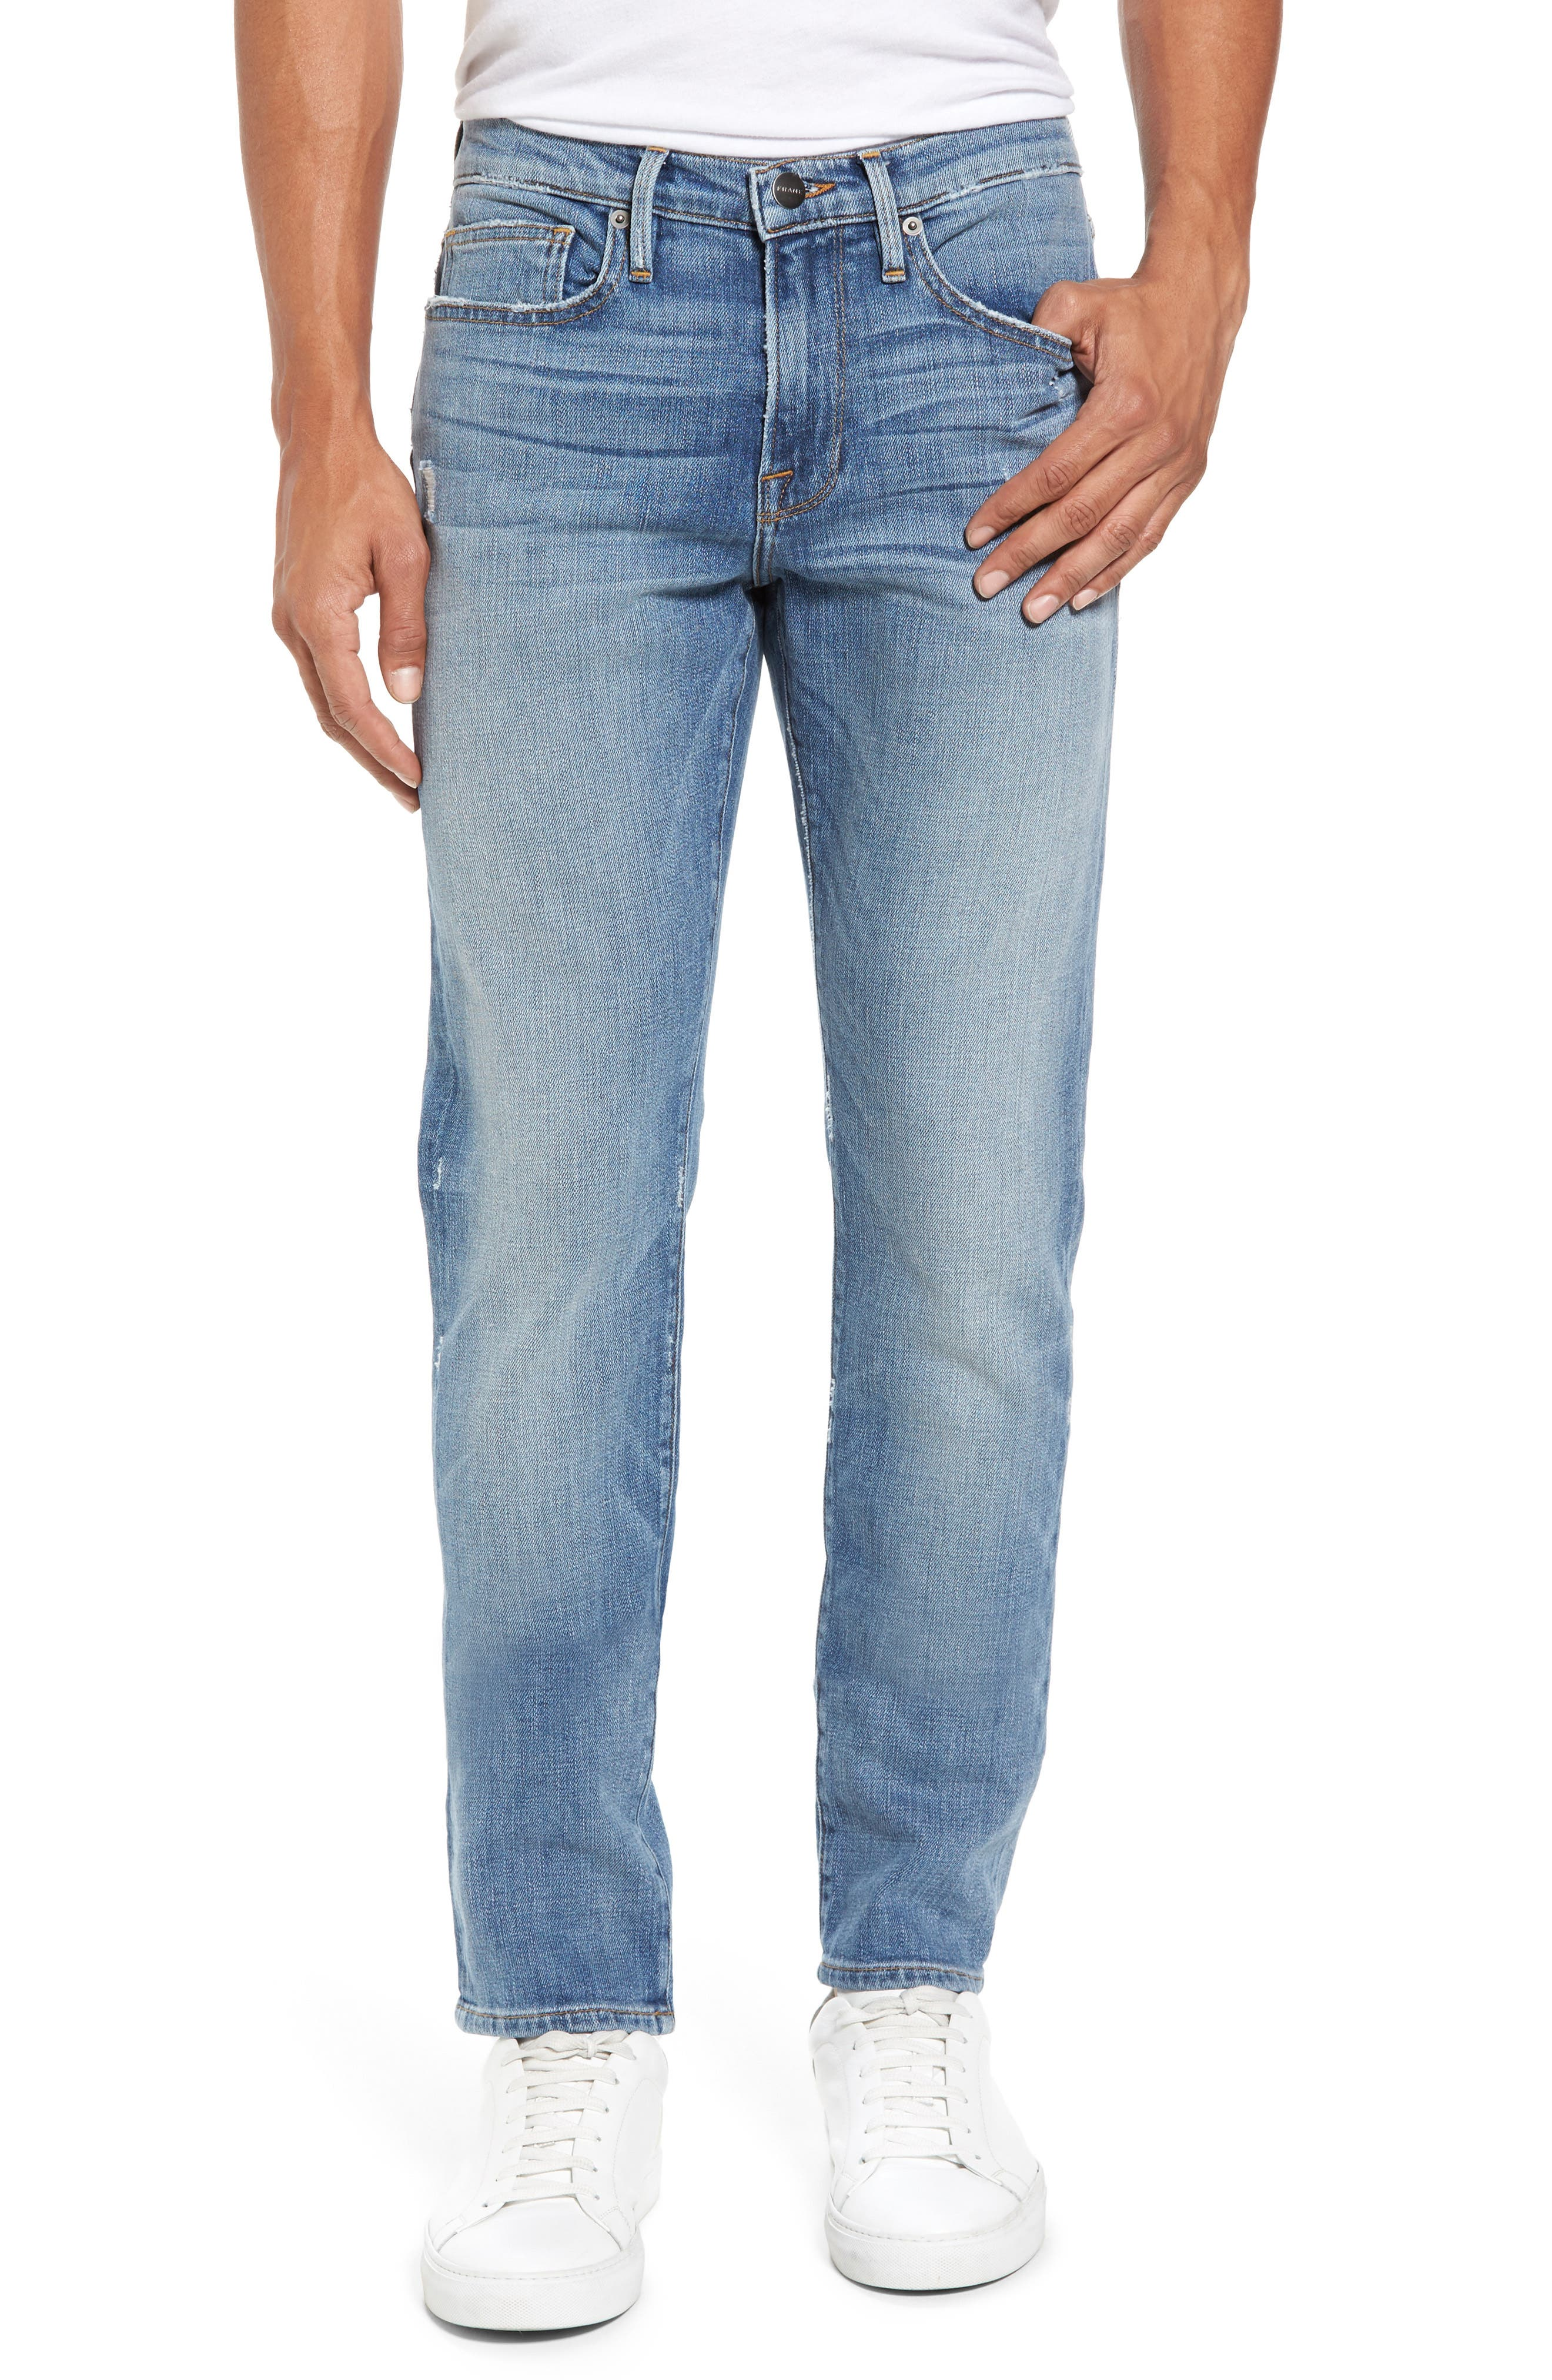 L'Homme Slim Fit Jeans,                         Main,                         color, Beaudry